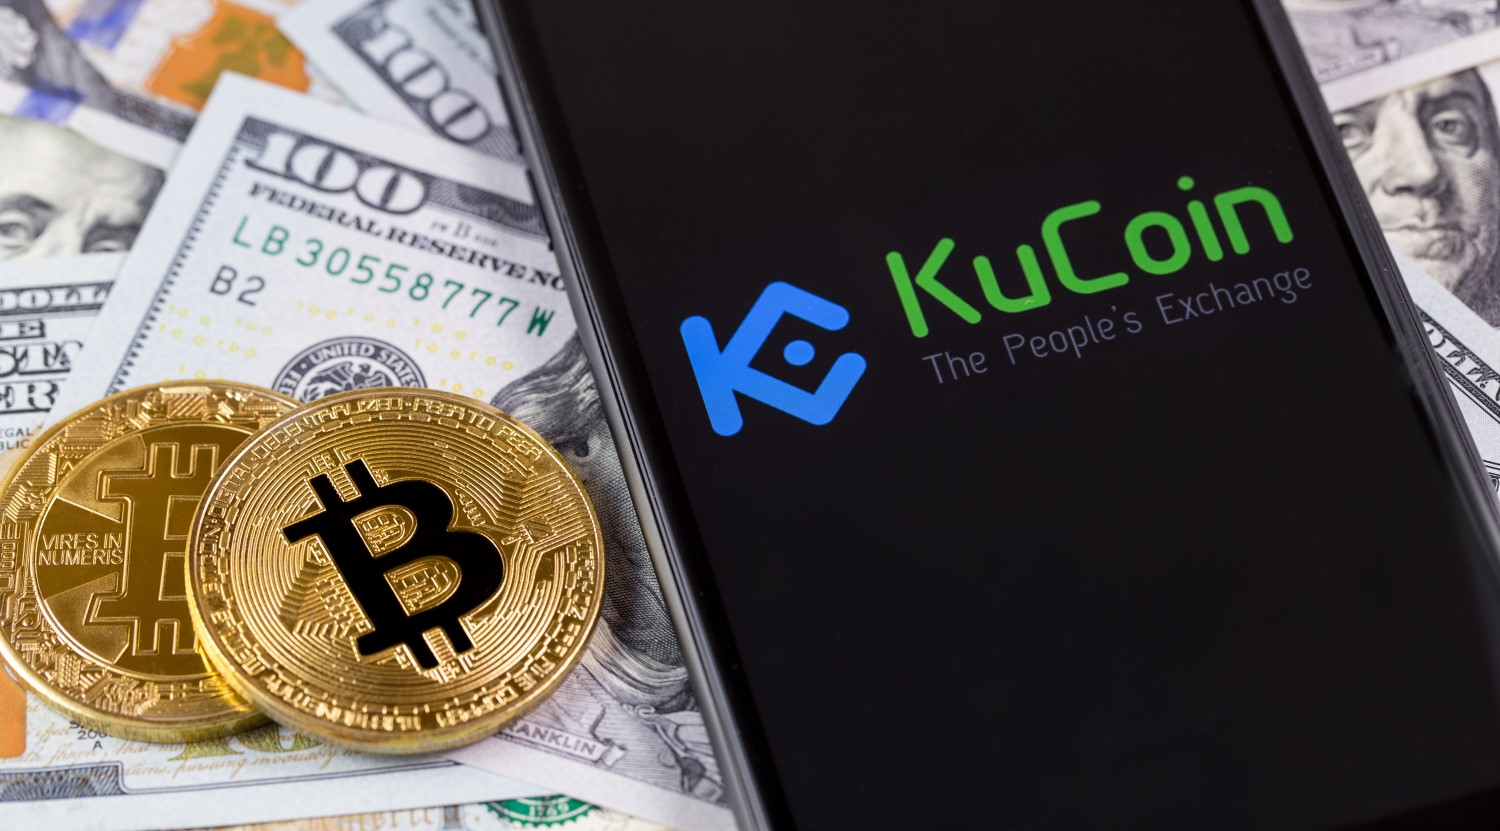 Hacked crypto exchange KuCoin resumes crypto deposits and withdrawals